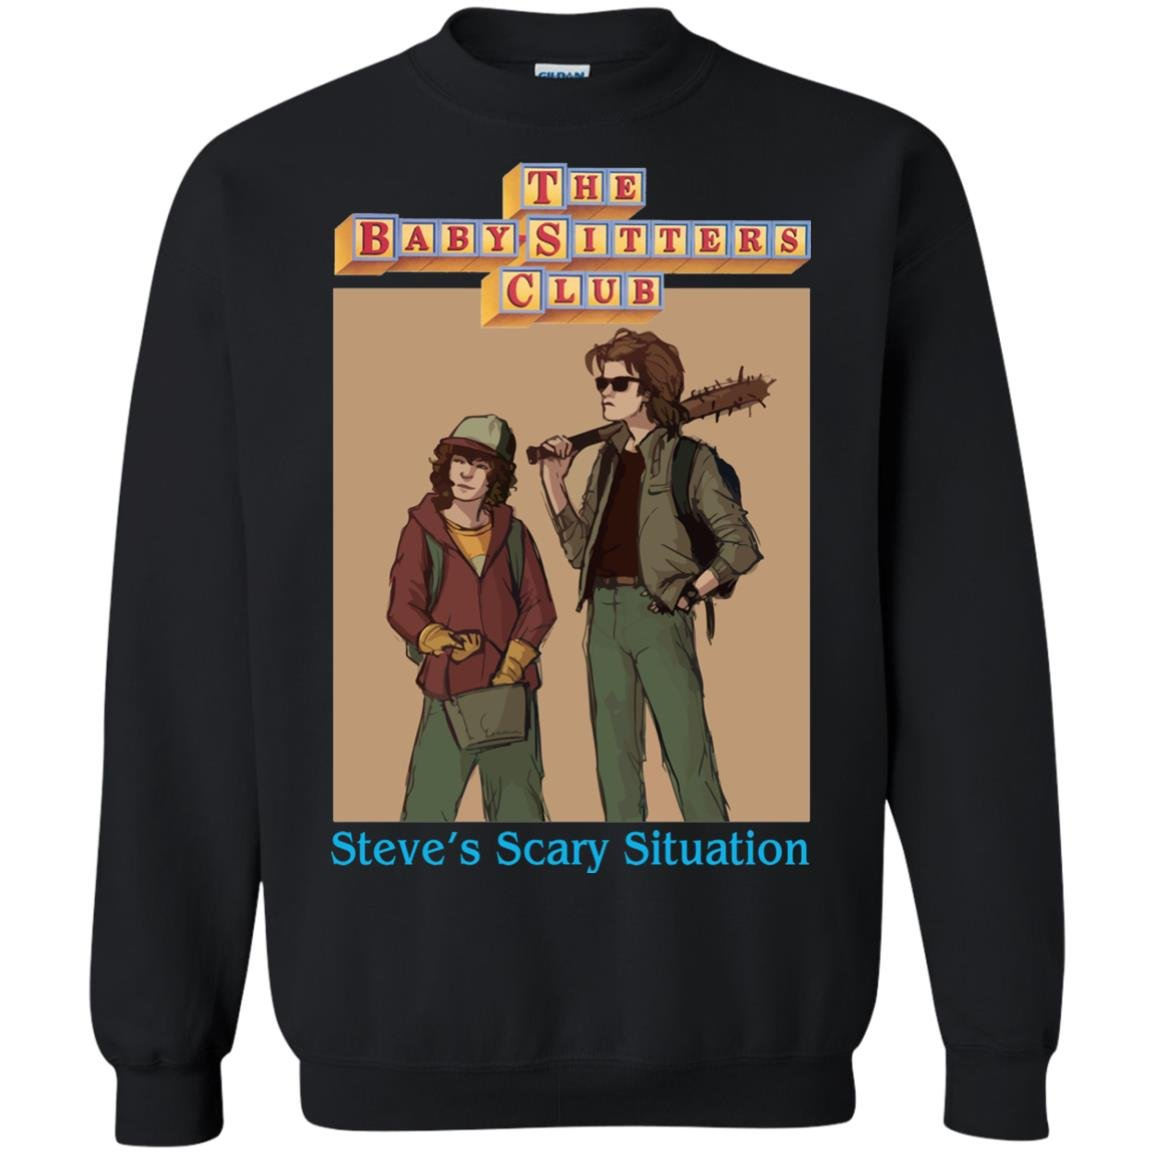 image 6064 - Steve and Dustin Shirt: Steve's Scary Situation